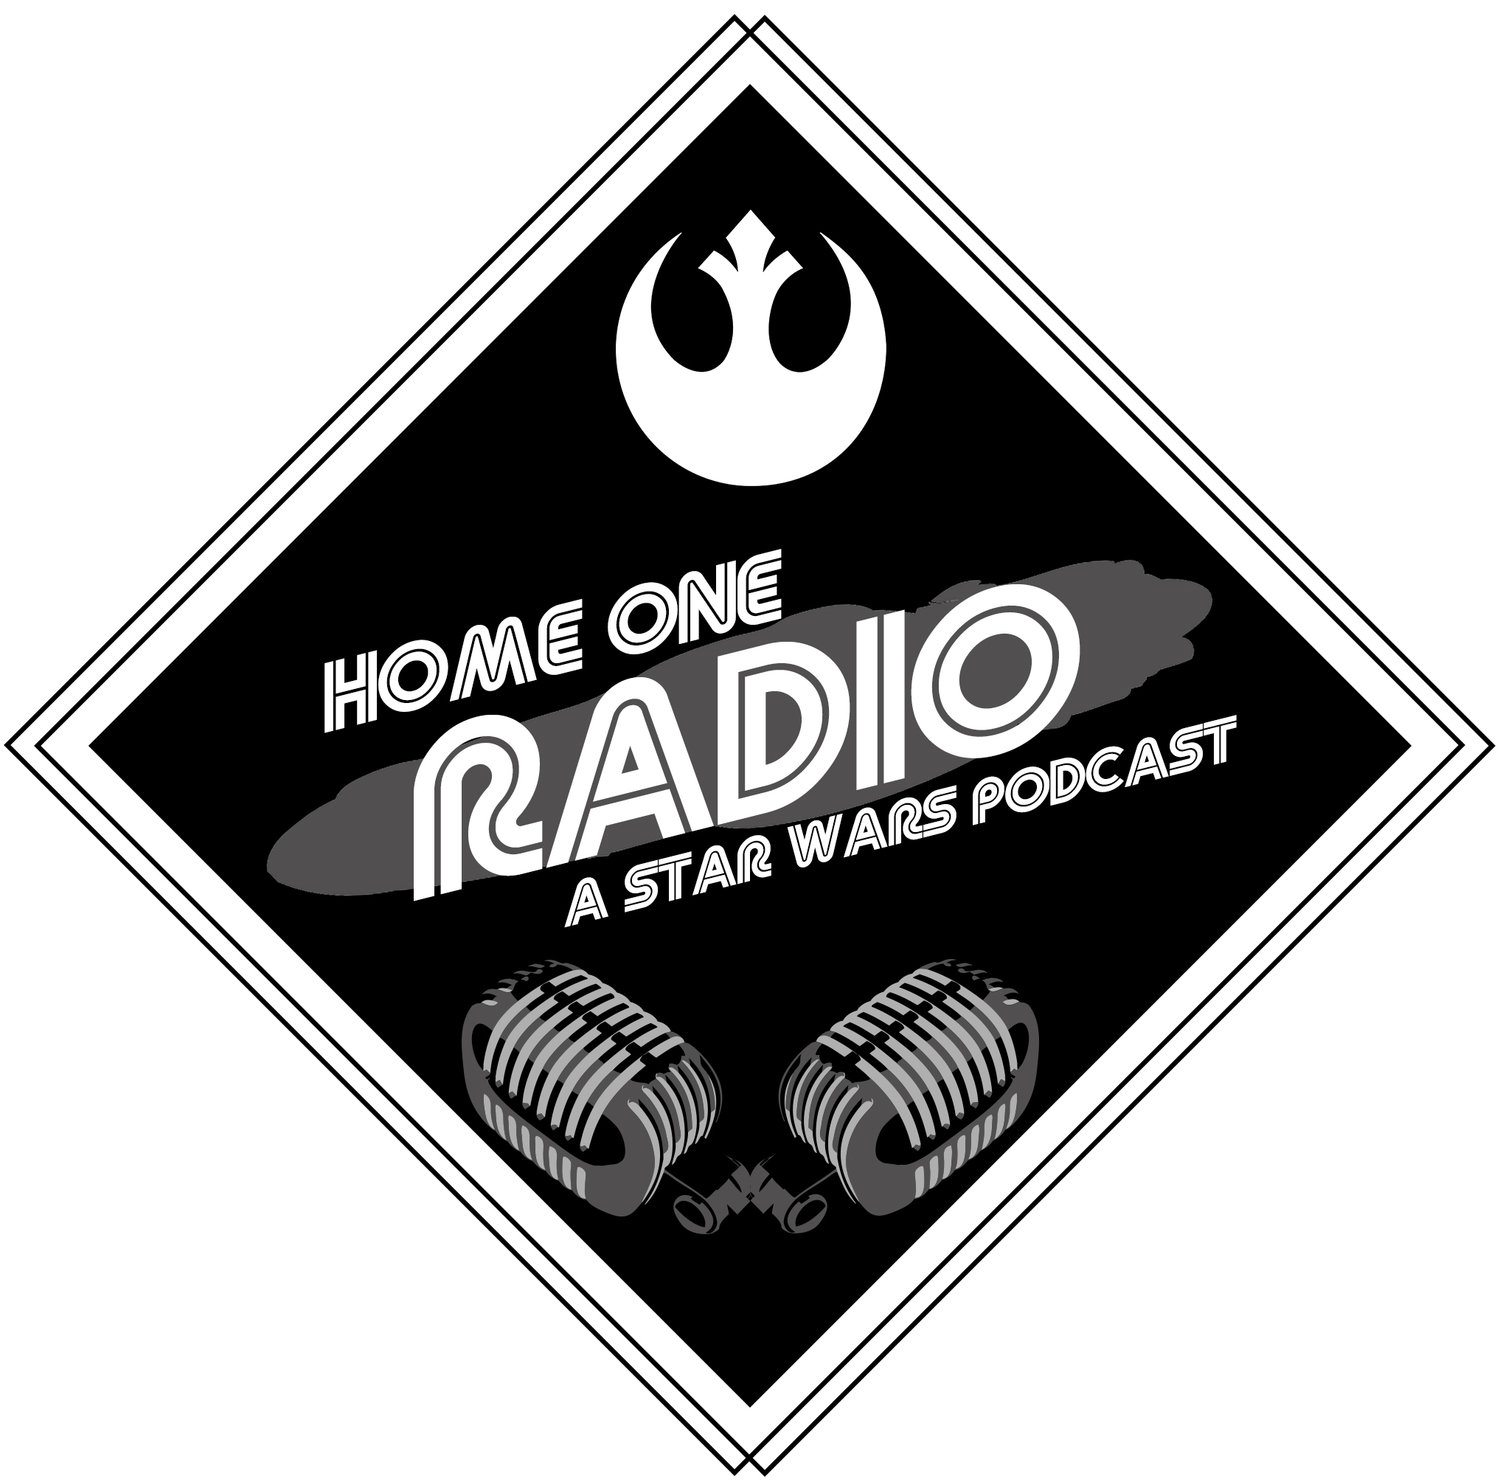 Home One Radio